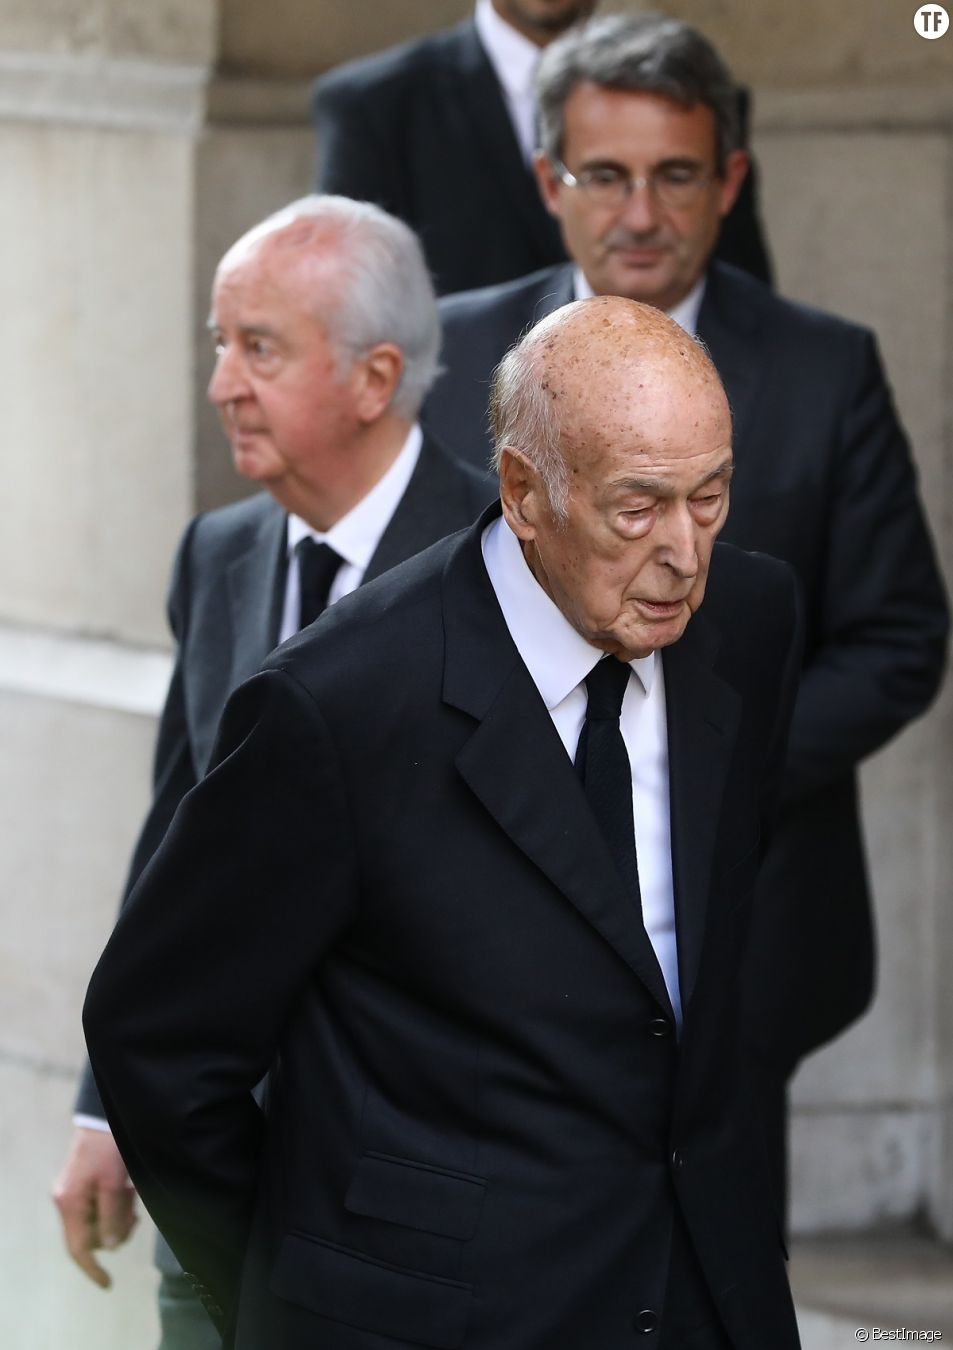 Valery Giscard D'Estaing accusé d'agression sexuelle.